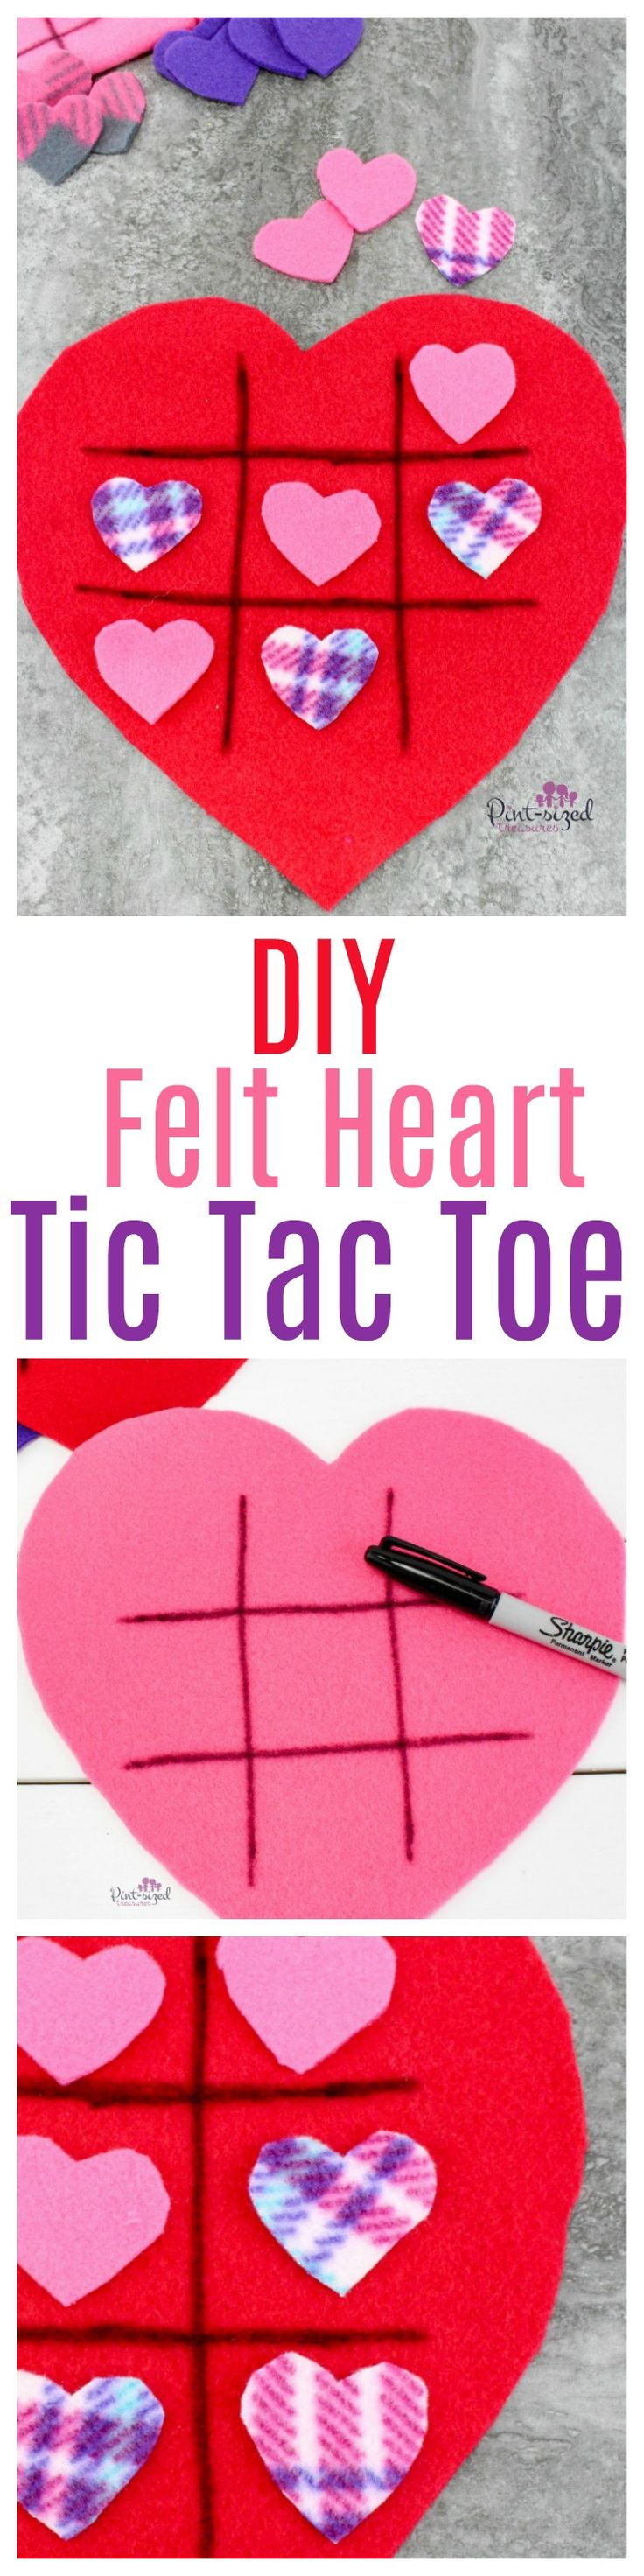 So fun! this SUPER easy, DIY felt heart-shaped Tic Tac Toe game is the perfect way to celebrate Valentine's Day the FUN way! Perfect for families or classes AND it's even super portable so you can keep a stash of these games ready to play when you're on-the-go. Go ahead and make some easy felt, heart-shaped Tic Tac Toe games today! #ValentinesDay #easycrafts #Craftsforkids #kbnmoms #kidsactivities #easyValentinesDaycrafts #ValentinesDaygames